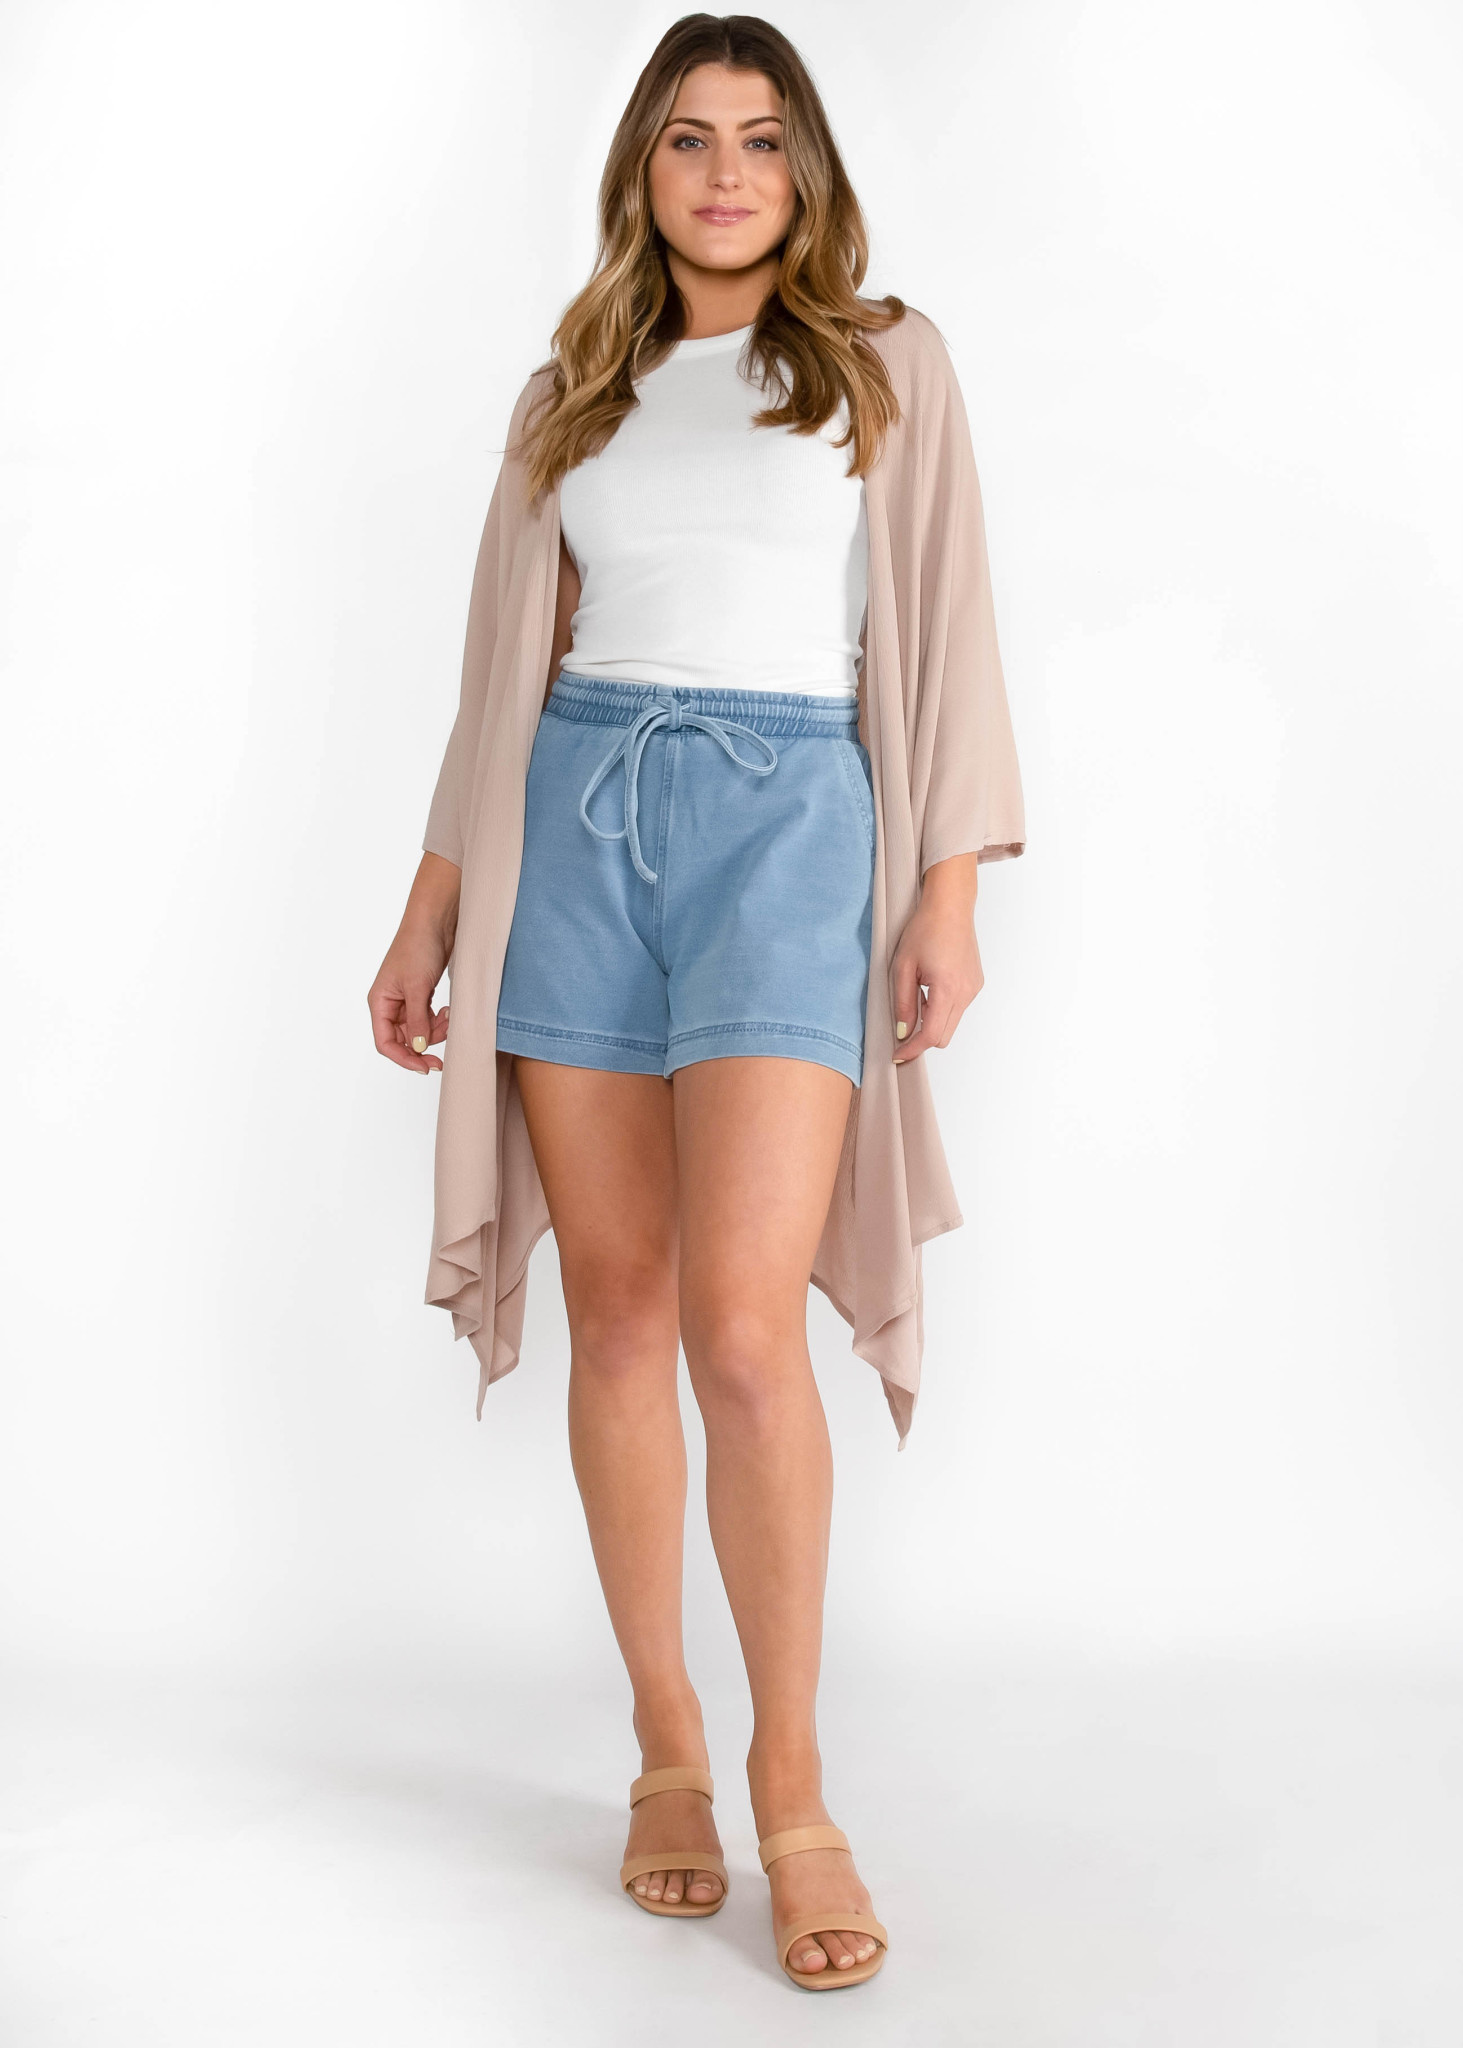 BAY OF ISLANDS LIGHTWEIGHT CARDIGAN